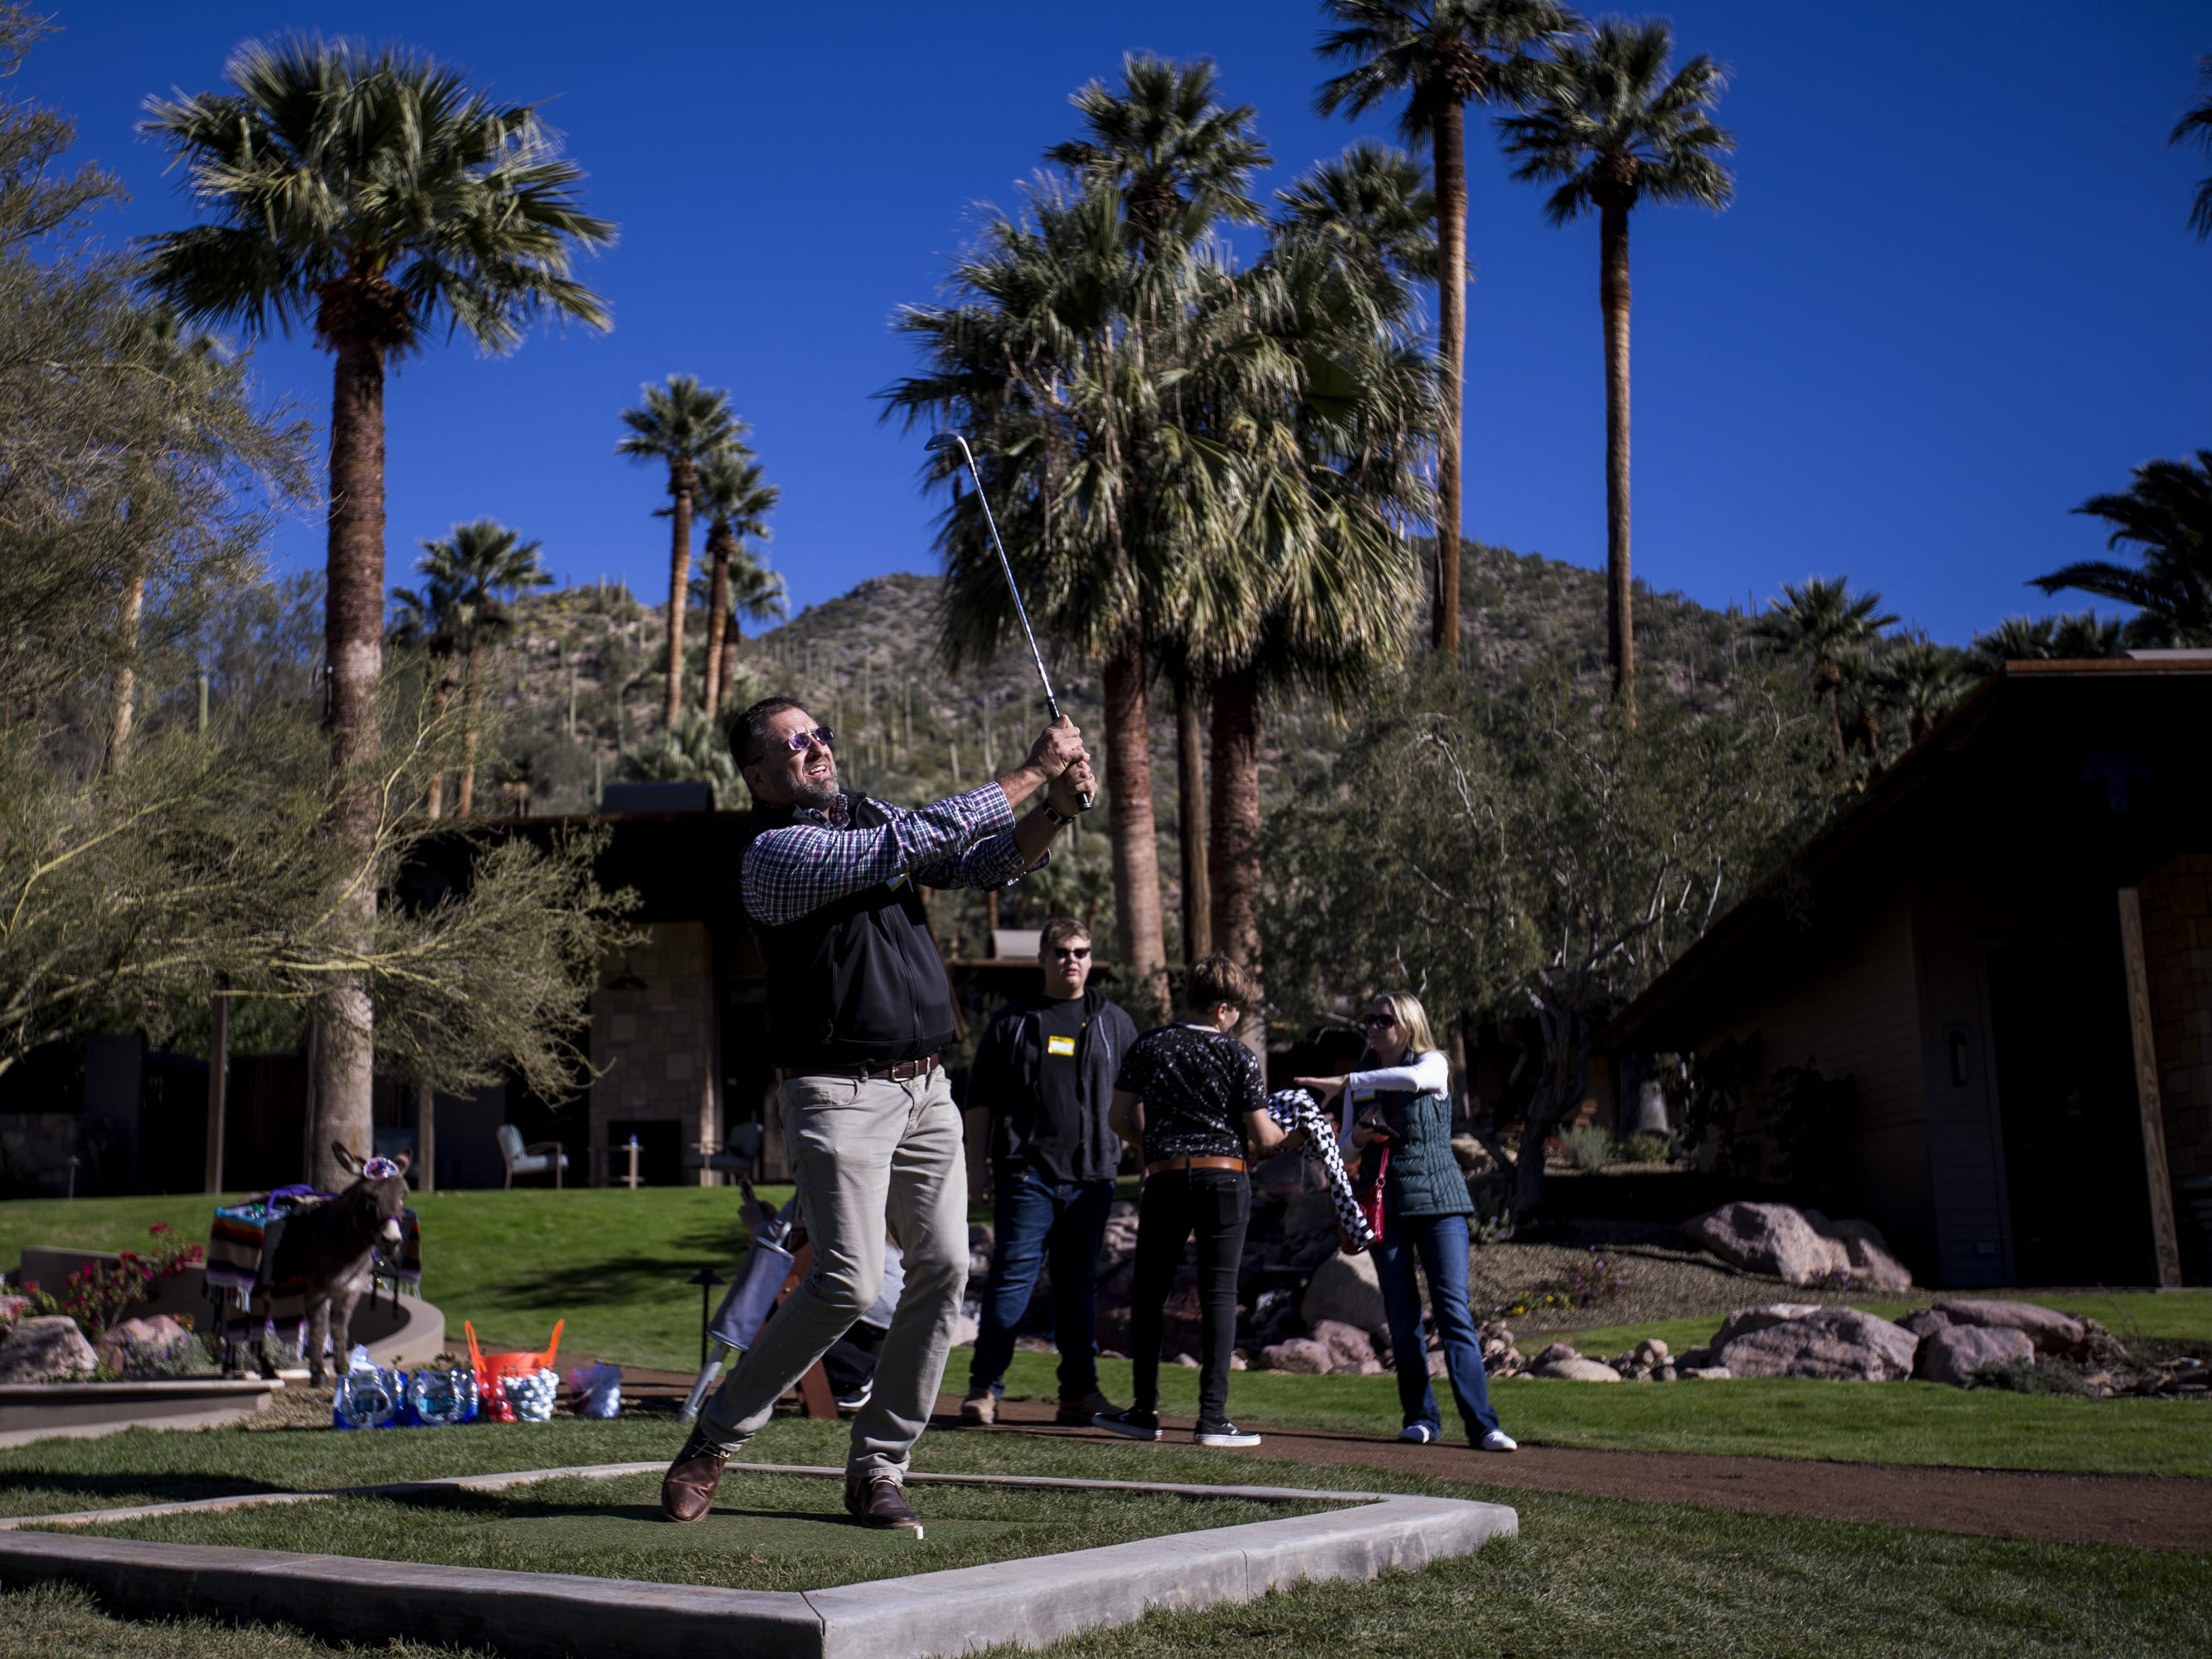 Mike Maras chips during a private preview of the newly renovated Castle Hot Springs resort on Saturday, Dec. 8, 2018, in Morristown, Ariz. It has been 50 years since the resort has hosted any guests.